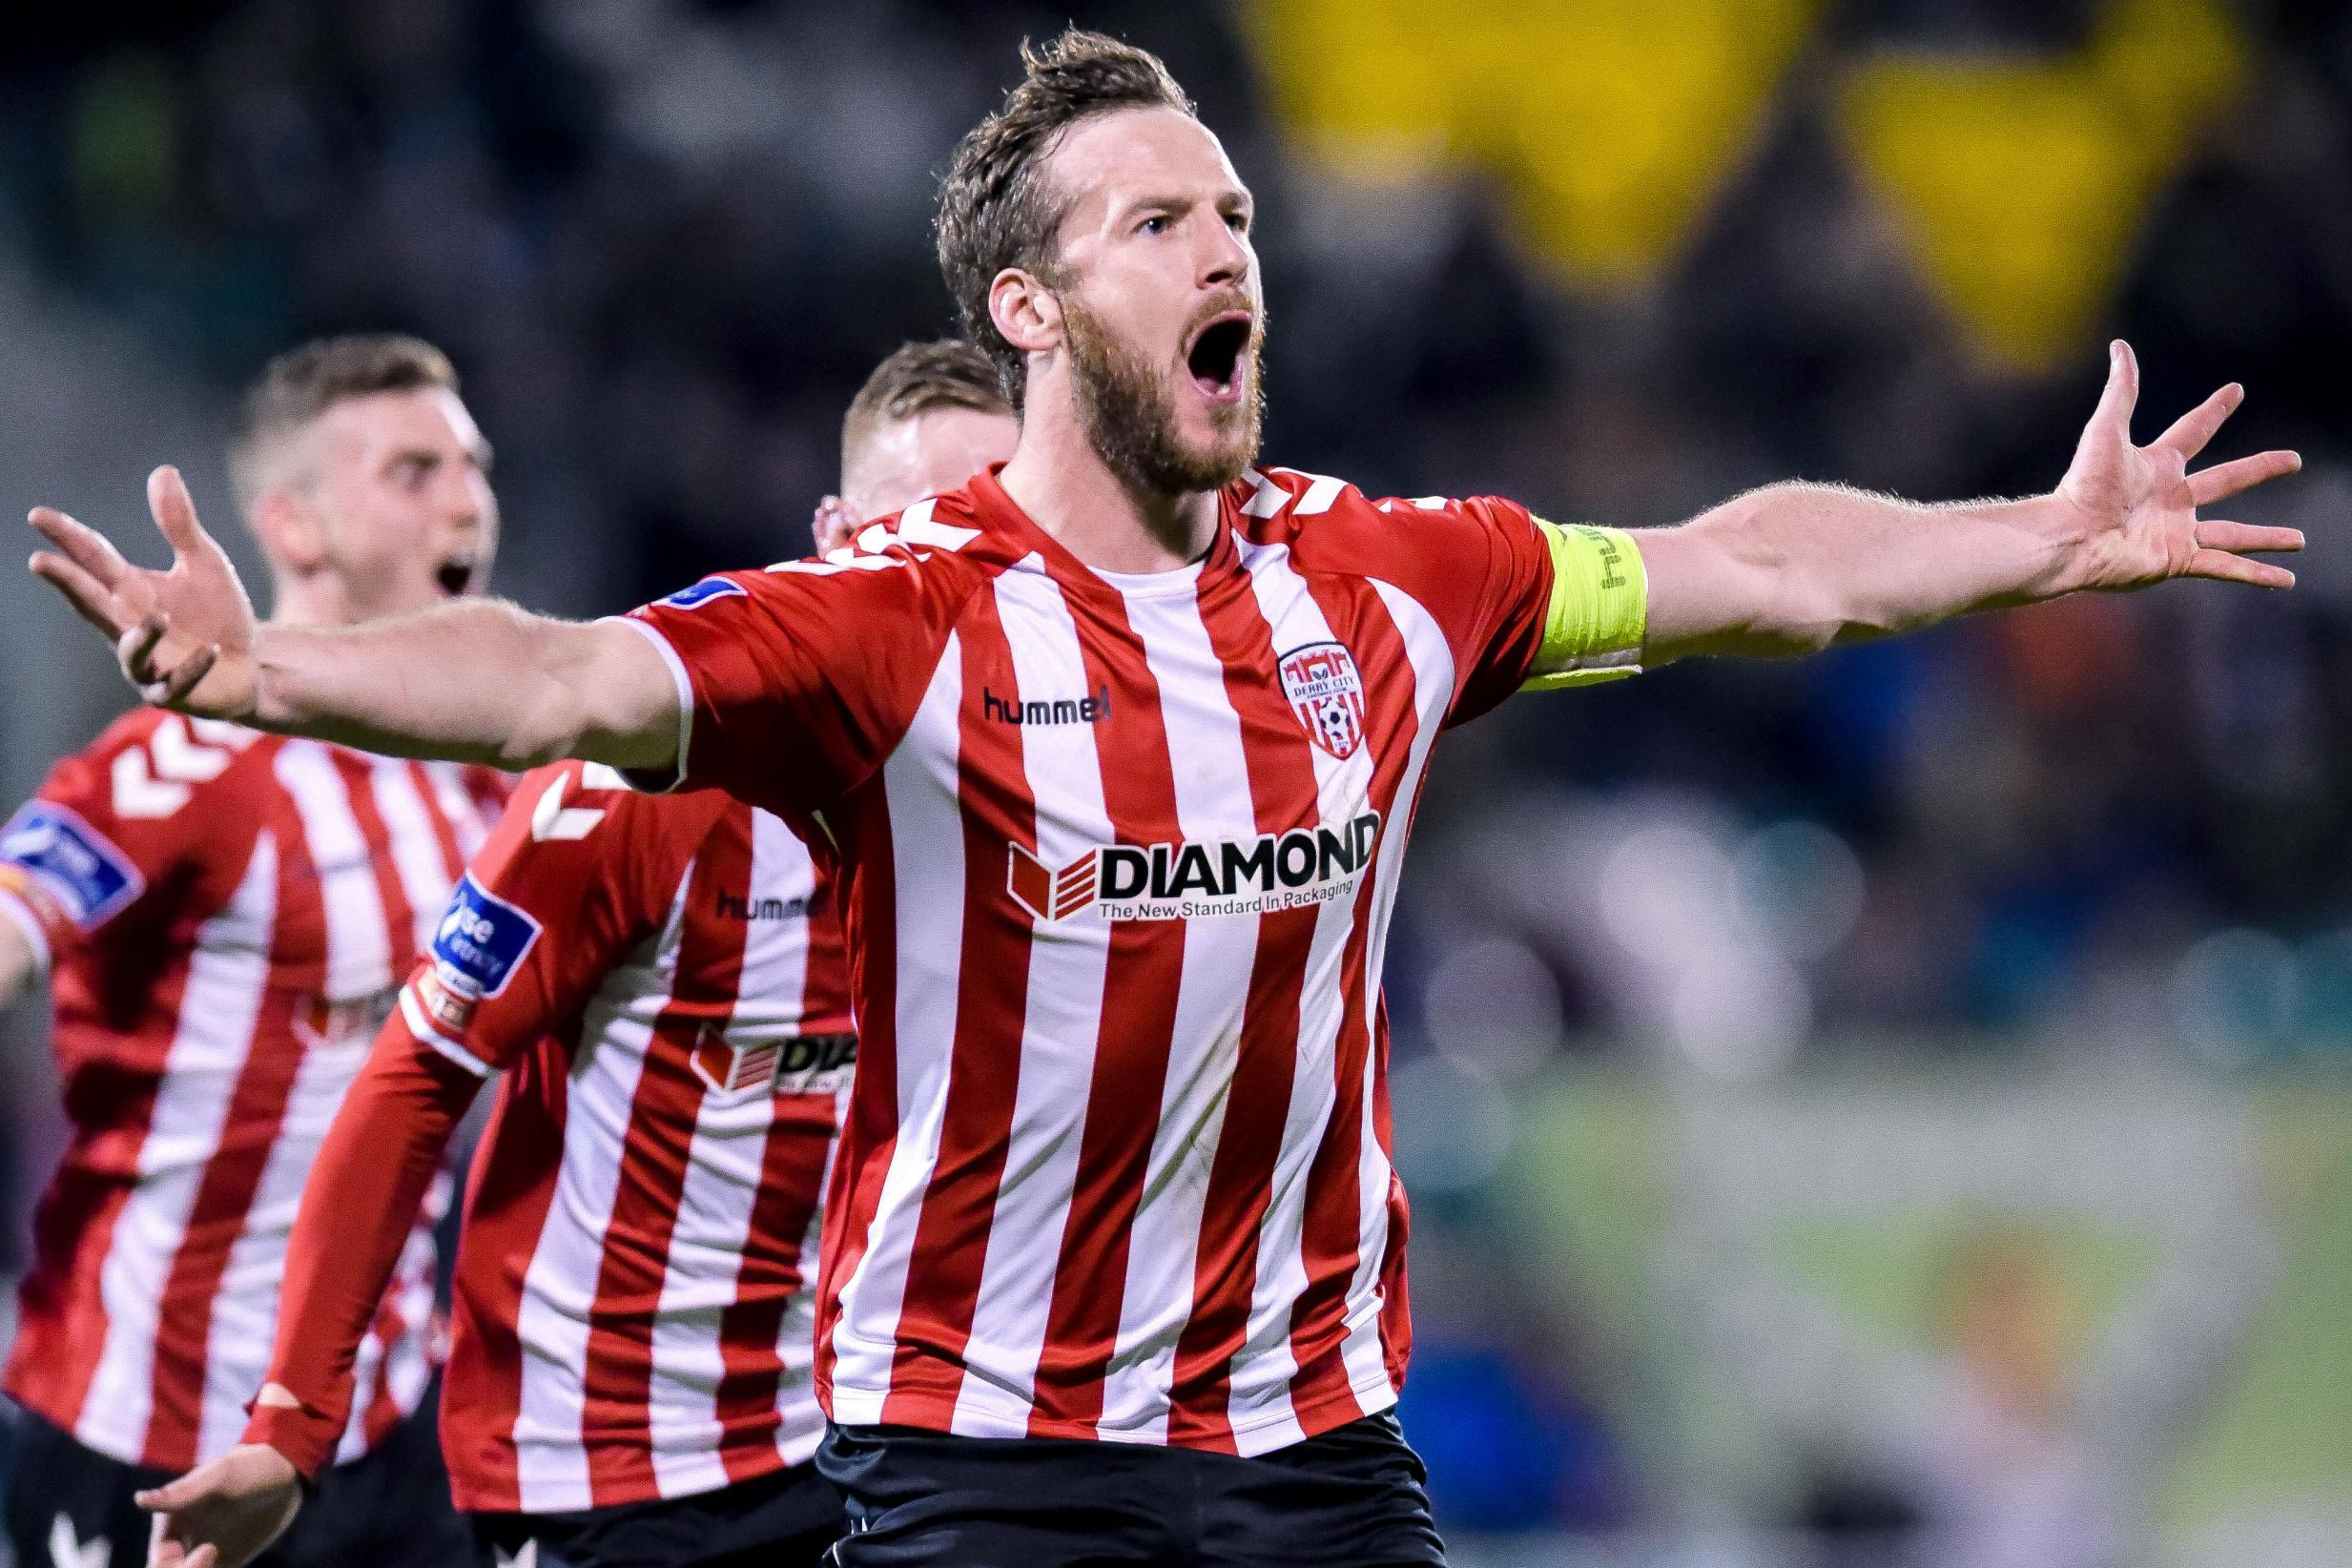 Ryan McBride playing for Derry City FC